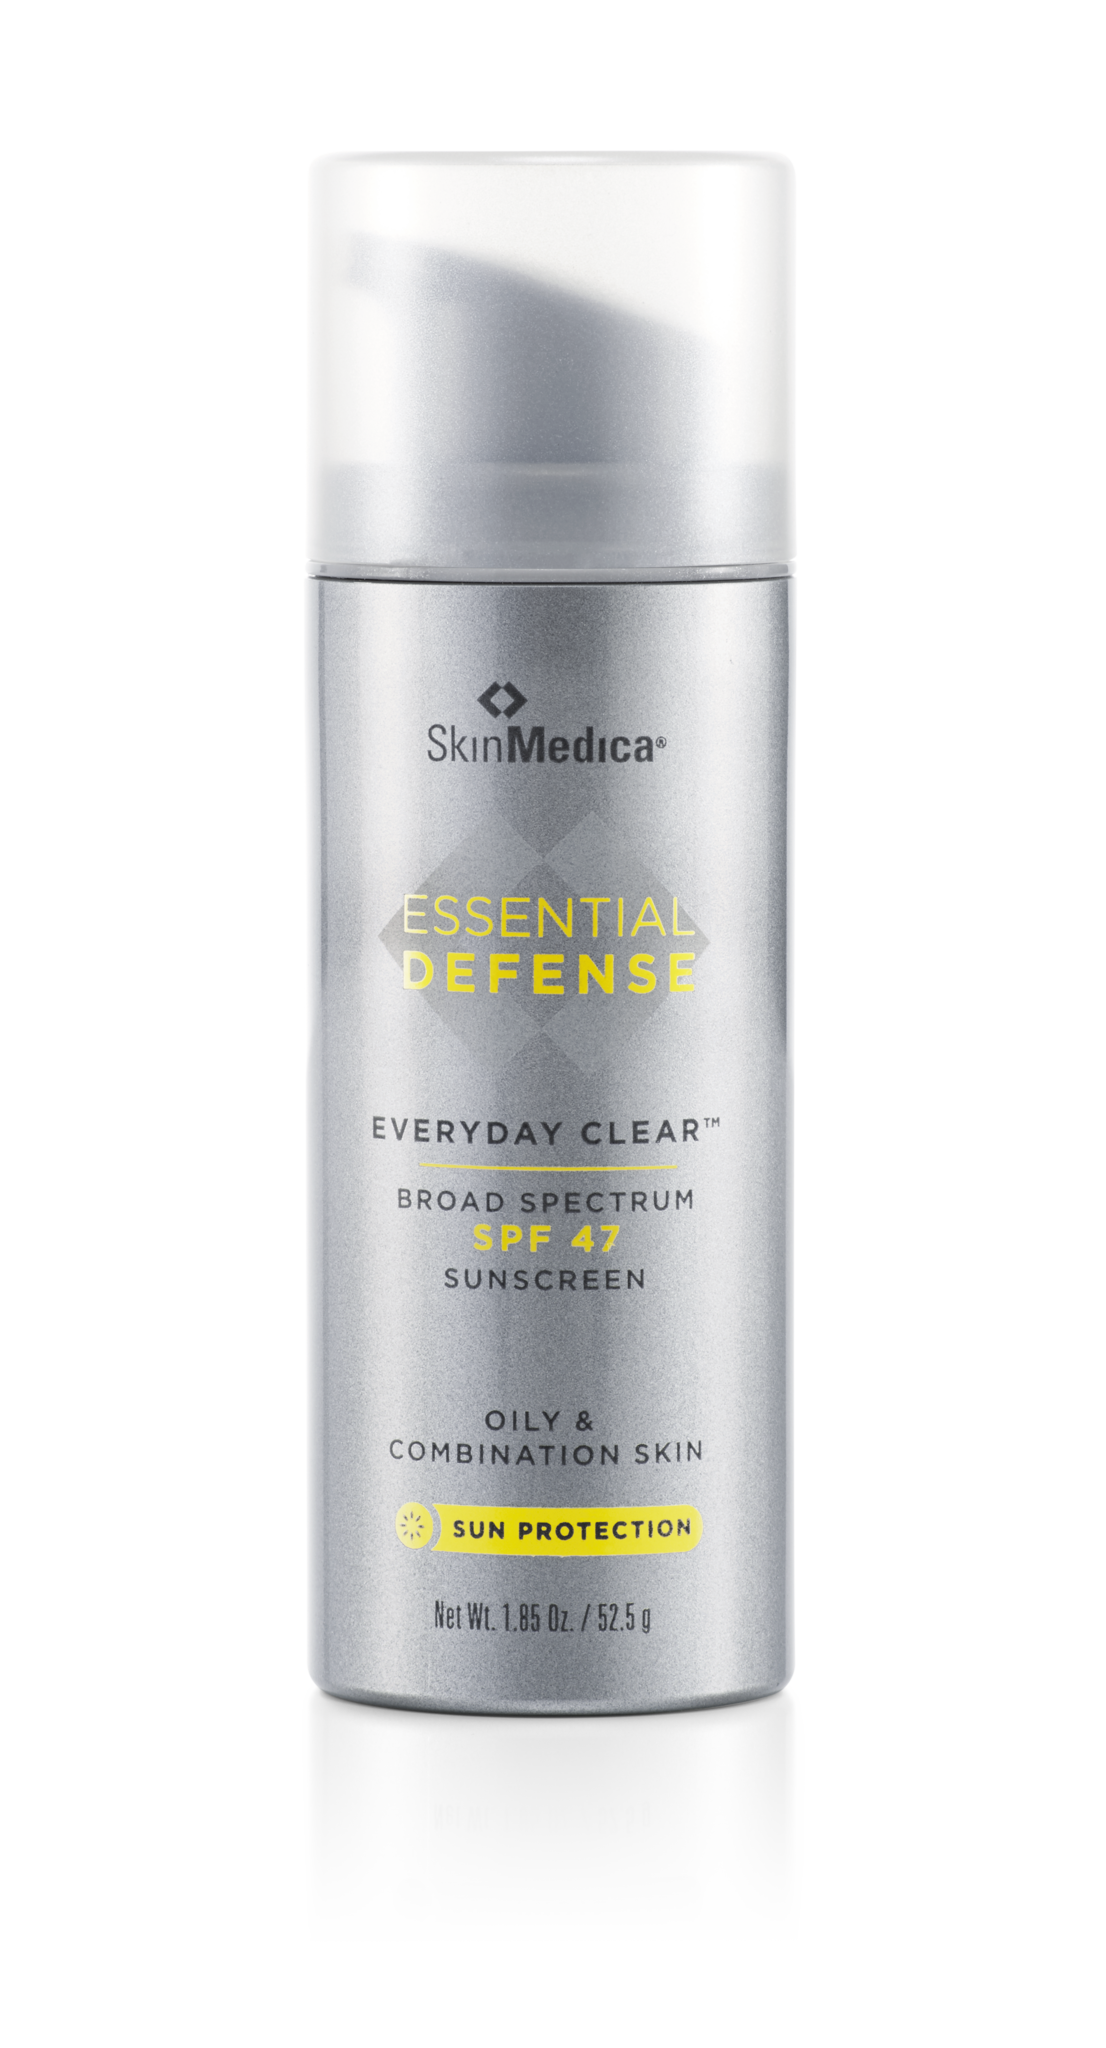 SkinMedica® Essential Defense Everyday Clear Broad Spectrum SPF 47 Sunscreen (1.85 oz)